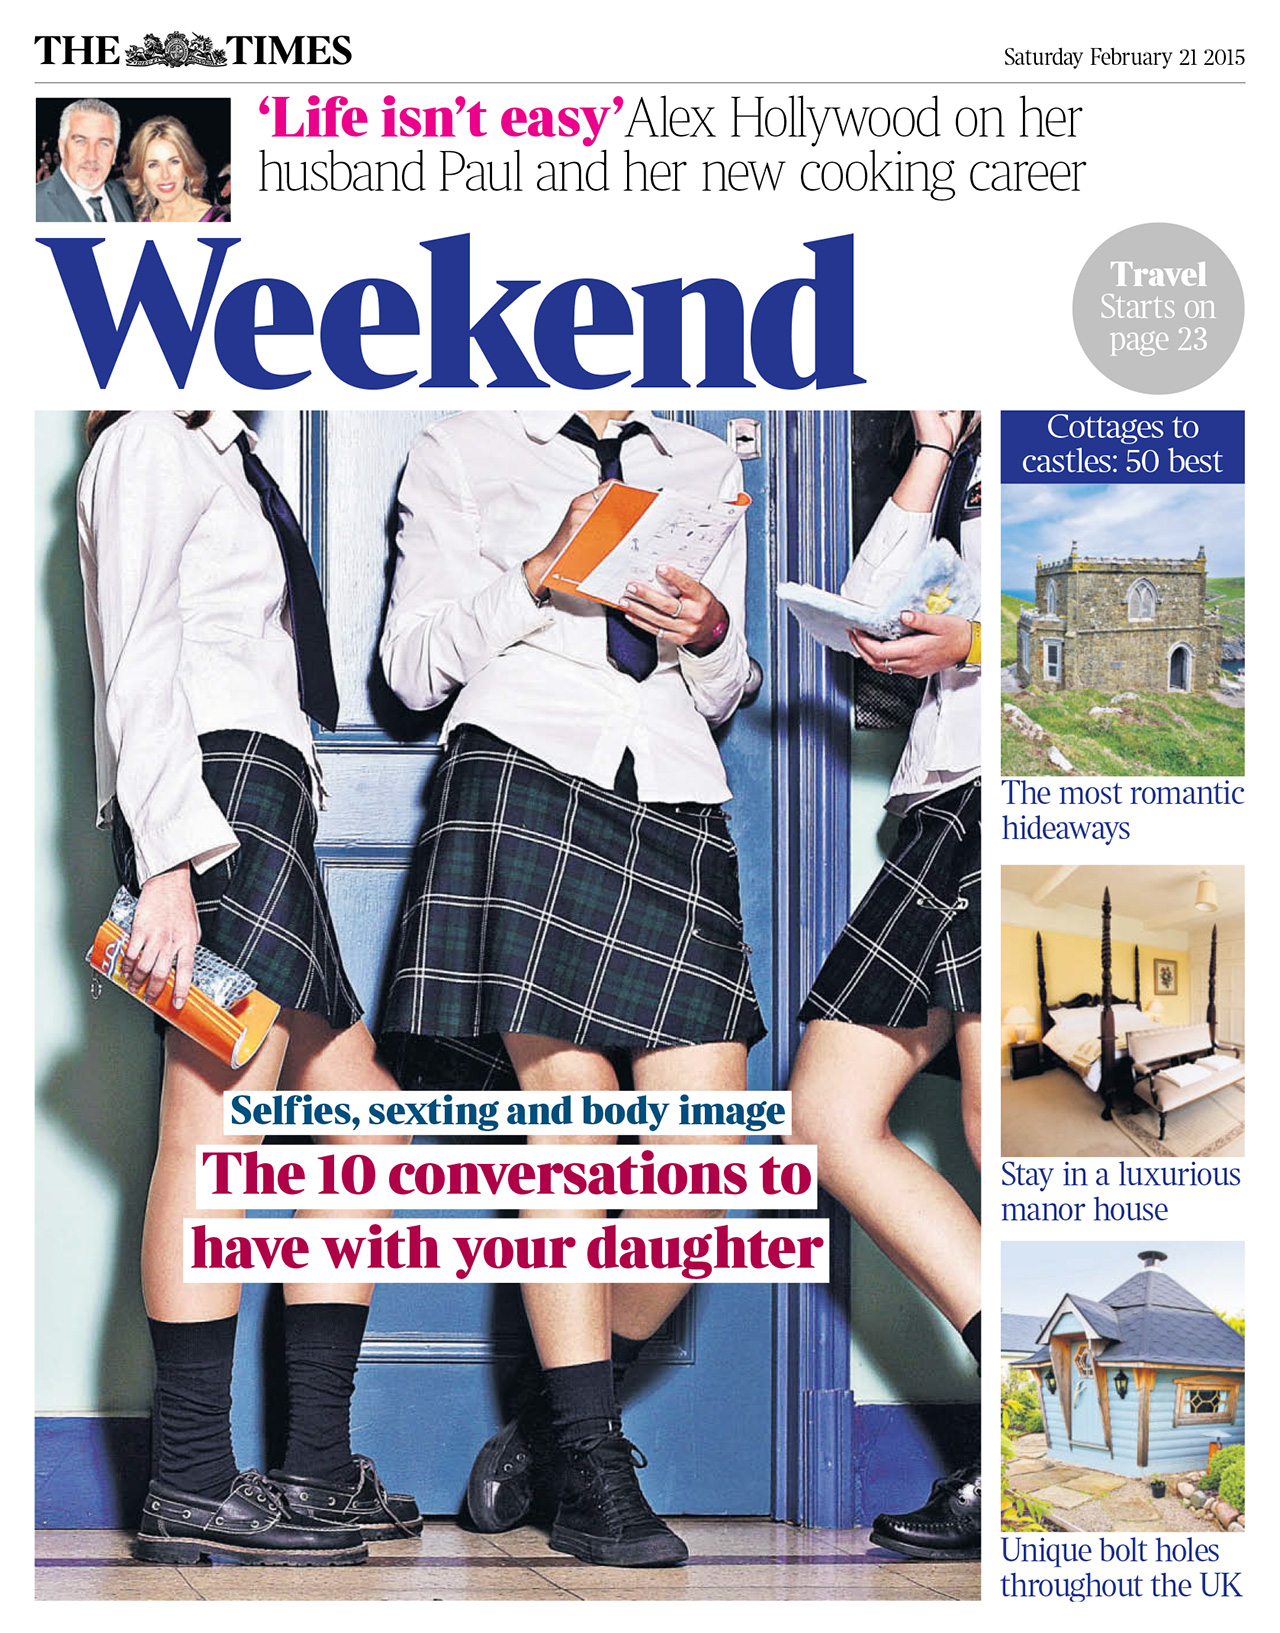 Times-Weekend Cover 21_2_15.jpg